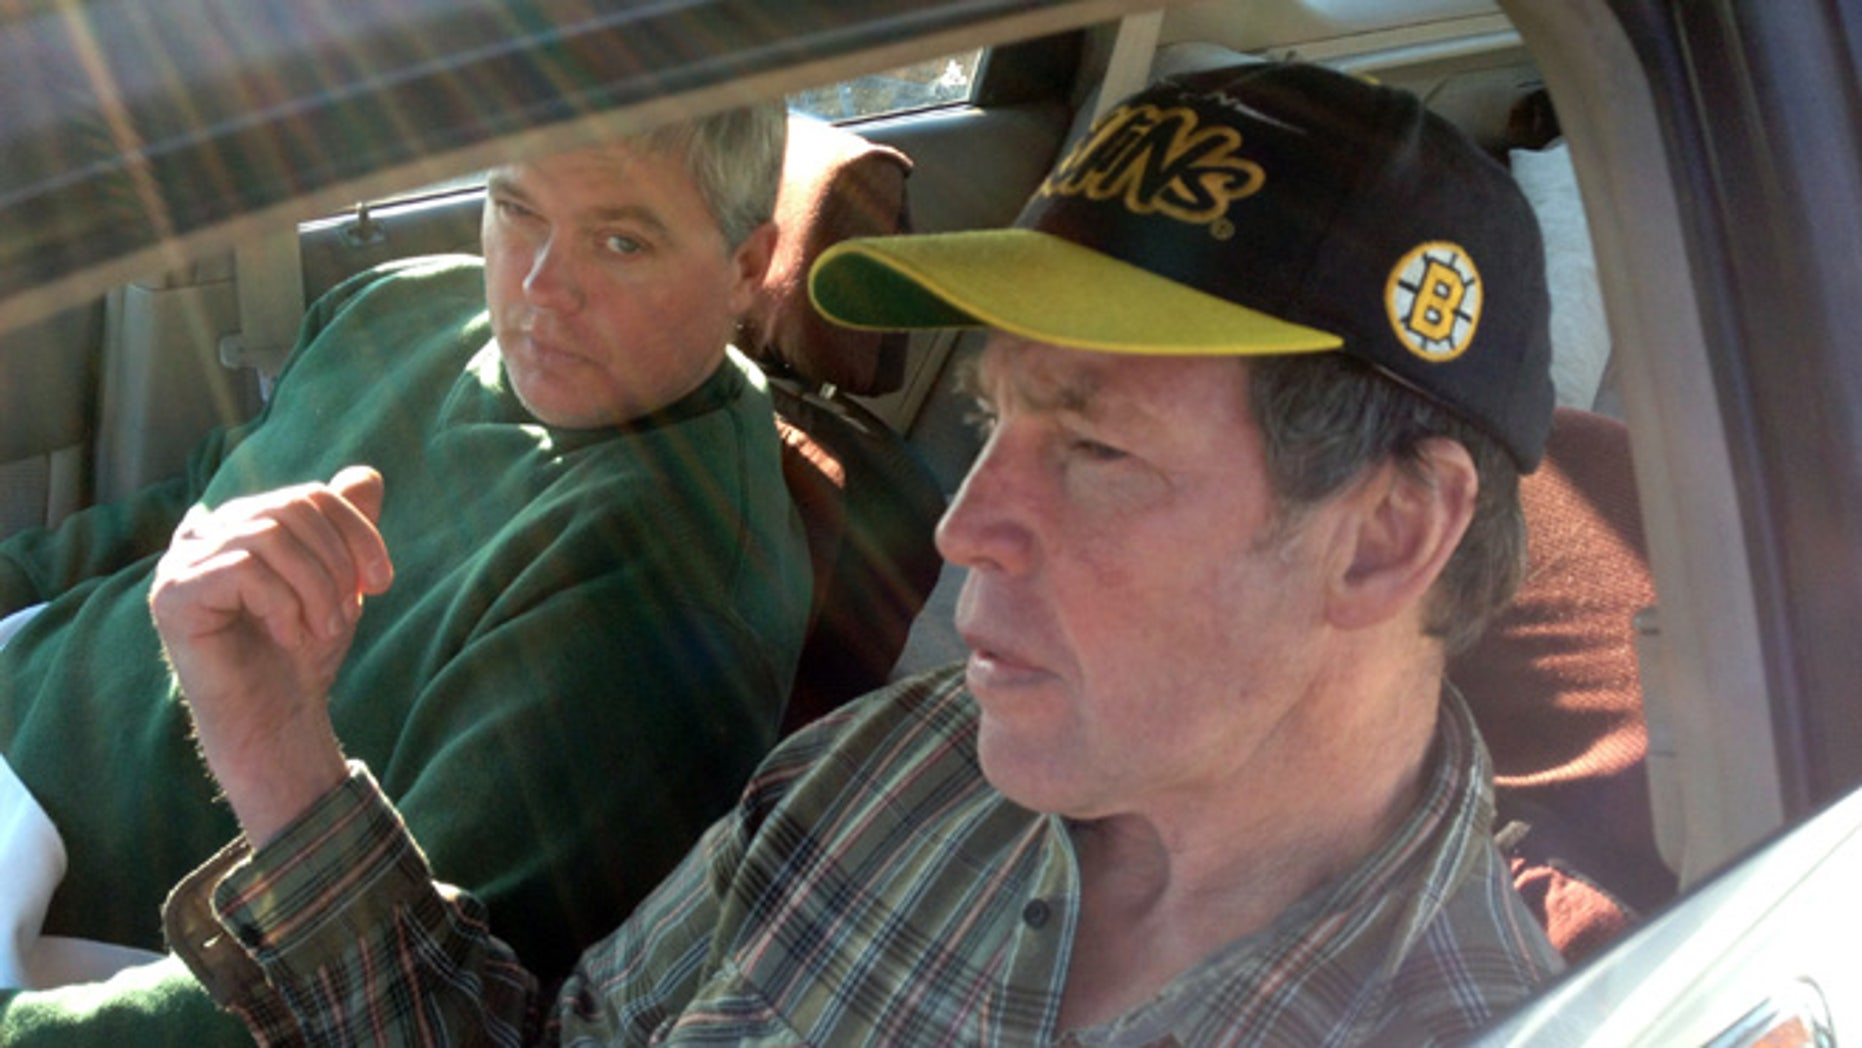 In this photo made Saturday, Oct. 19, 2013, Fred Schaeffer, left, of Raymond, N.H. and George Reynolds, right, of Derry, N.H. sit in a car after being rescued in waters off of Salem, Mass. The two New Hampshire men whose boat capsized off the Massachusetts coast prayed and sang gospel songs as they survived a 15-hour ordeal that ended with them being rescued by a passing fishing boat. The men spent Friday night sitting on a plank over two hulls of a 25-foot trimaran as waves crashed over them through the night.